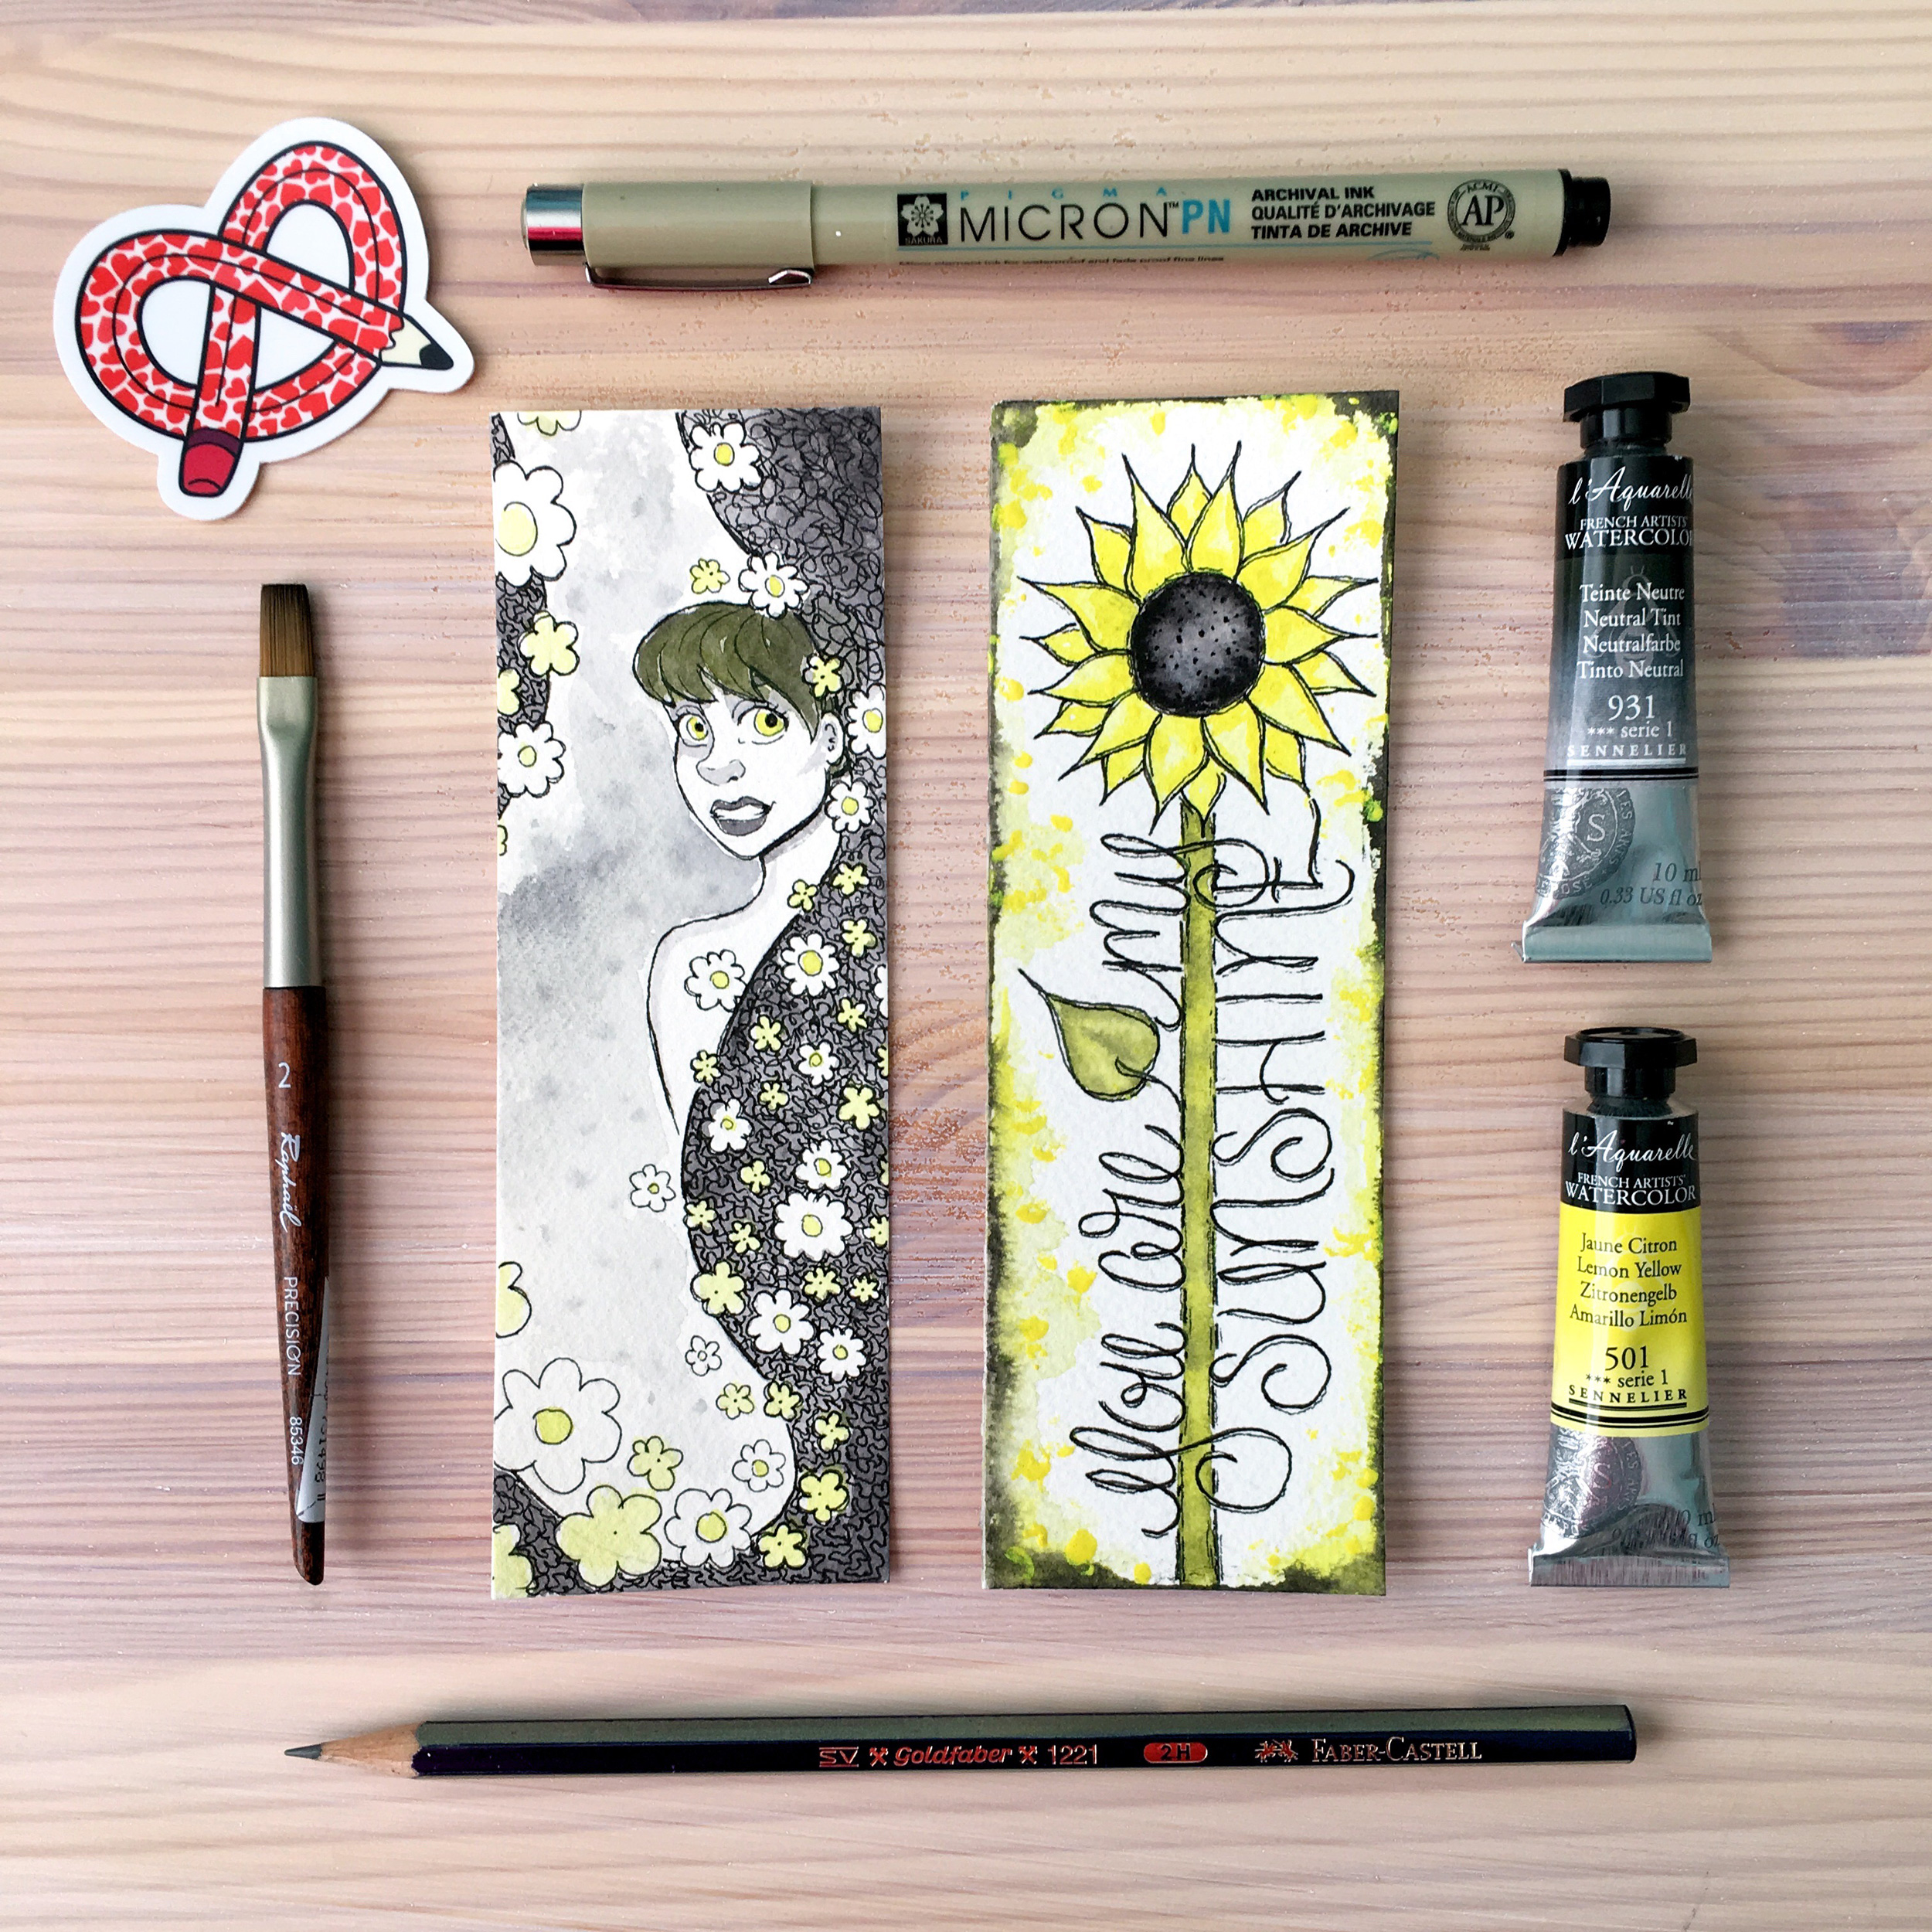 Dani Claire. Mother Daughter Art Challenge. Same Art Supplies, Two Results. Watercolor Art. Watercolor Artists. art Snacks Challenge. Art Snacks. Hand Letter Artist. Handlettering. Sunflower art. Girlie Art. You Are My Sunshine.